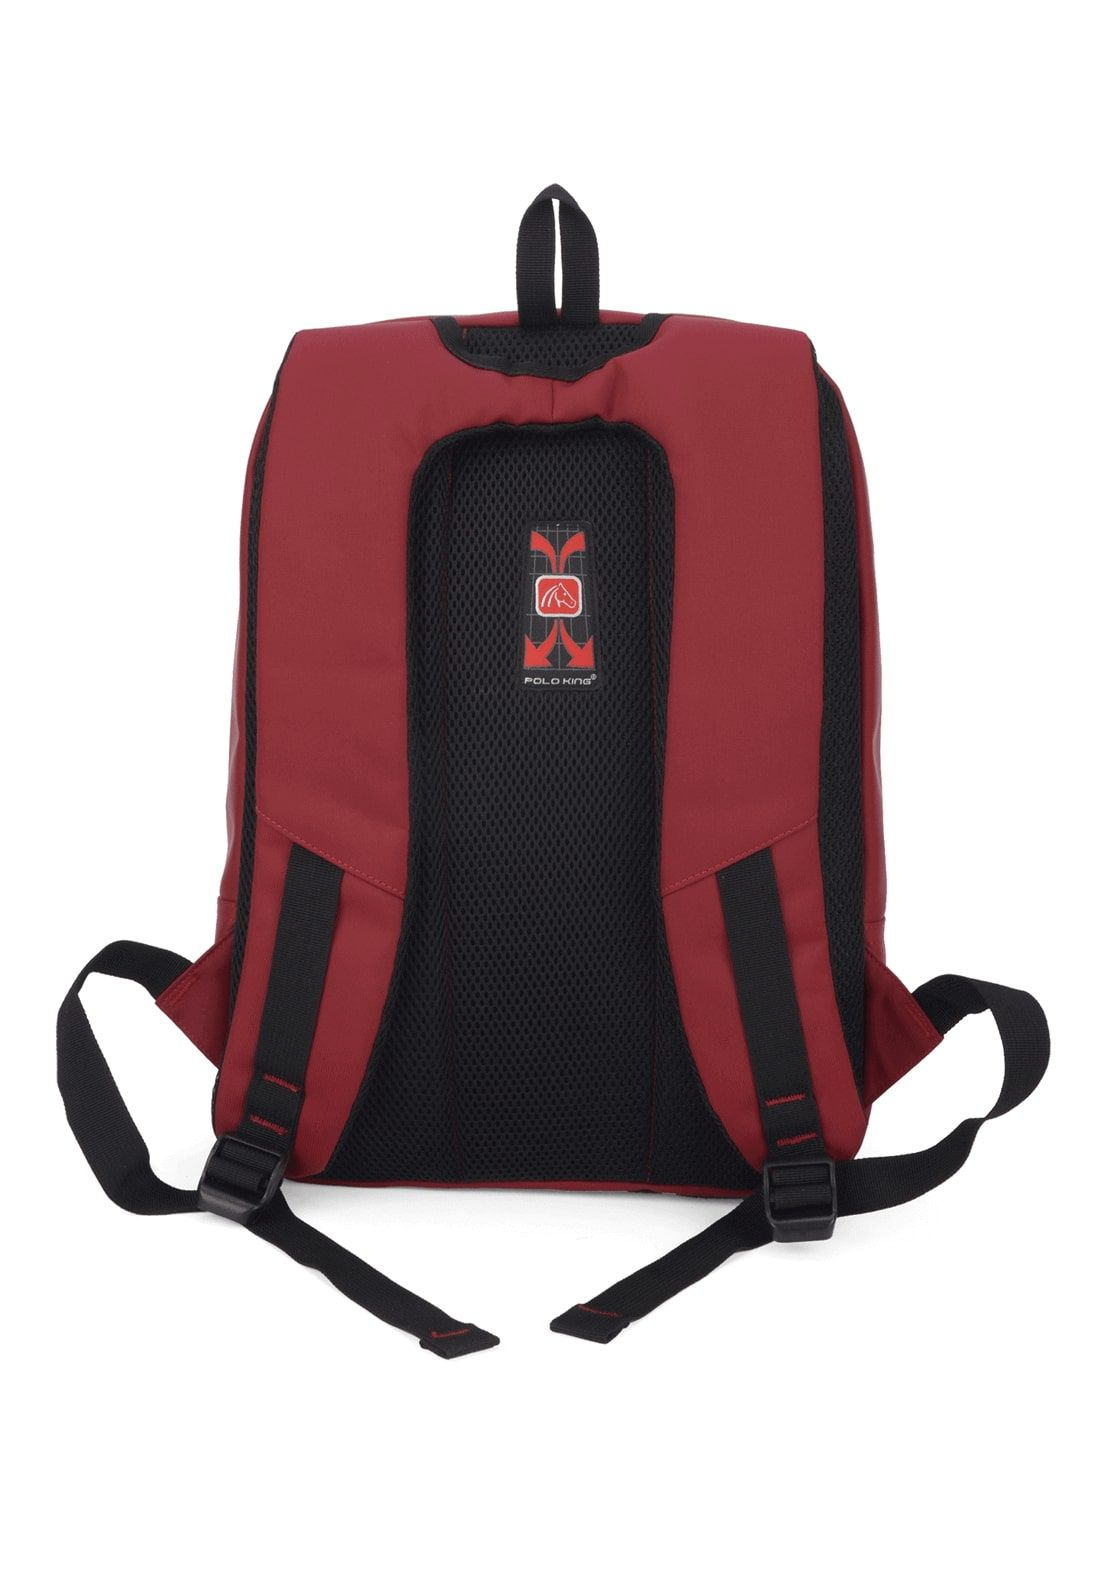 Mochila Notebook Polo King Vermelha Executiva Original